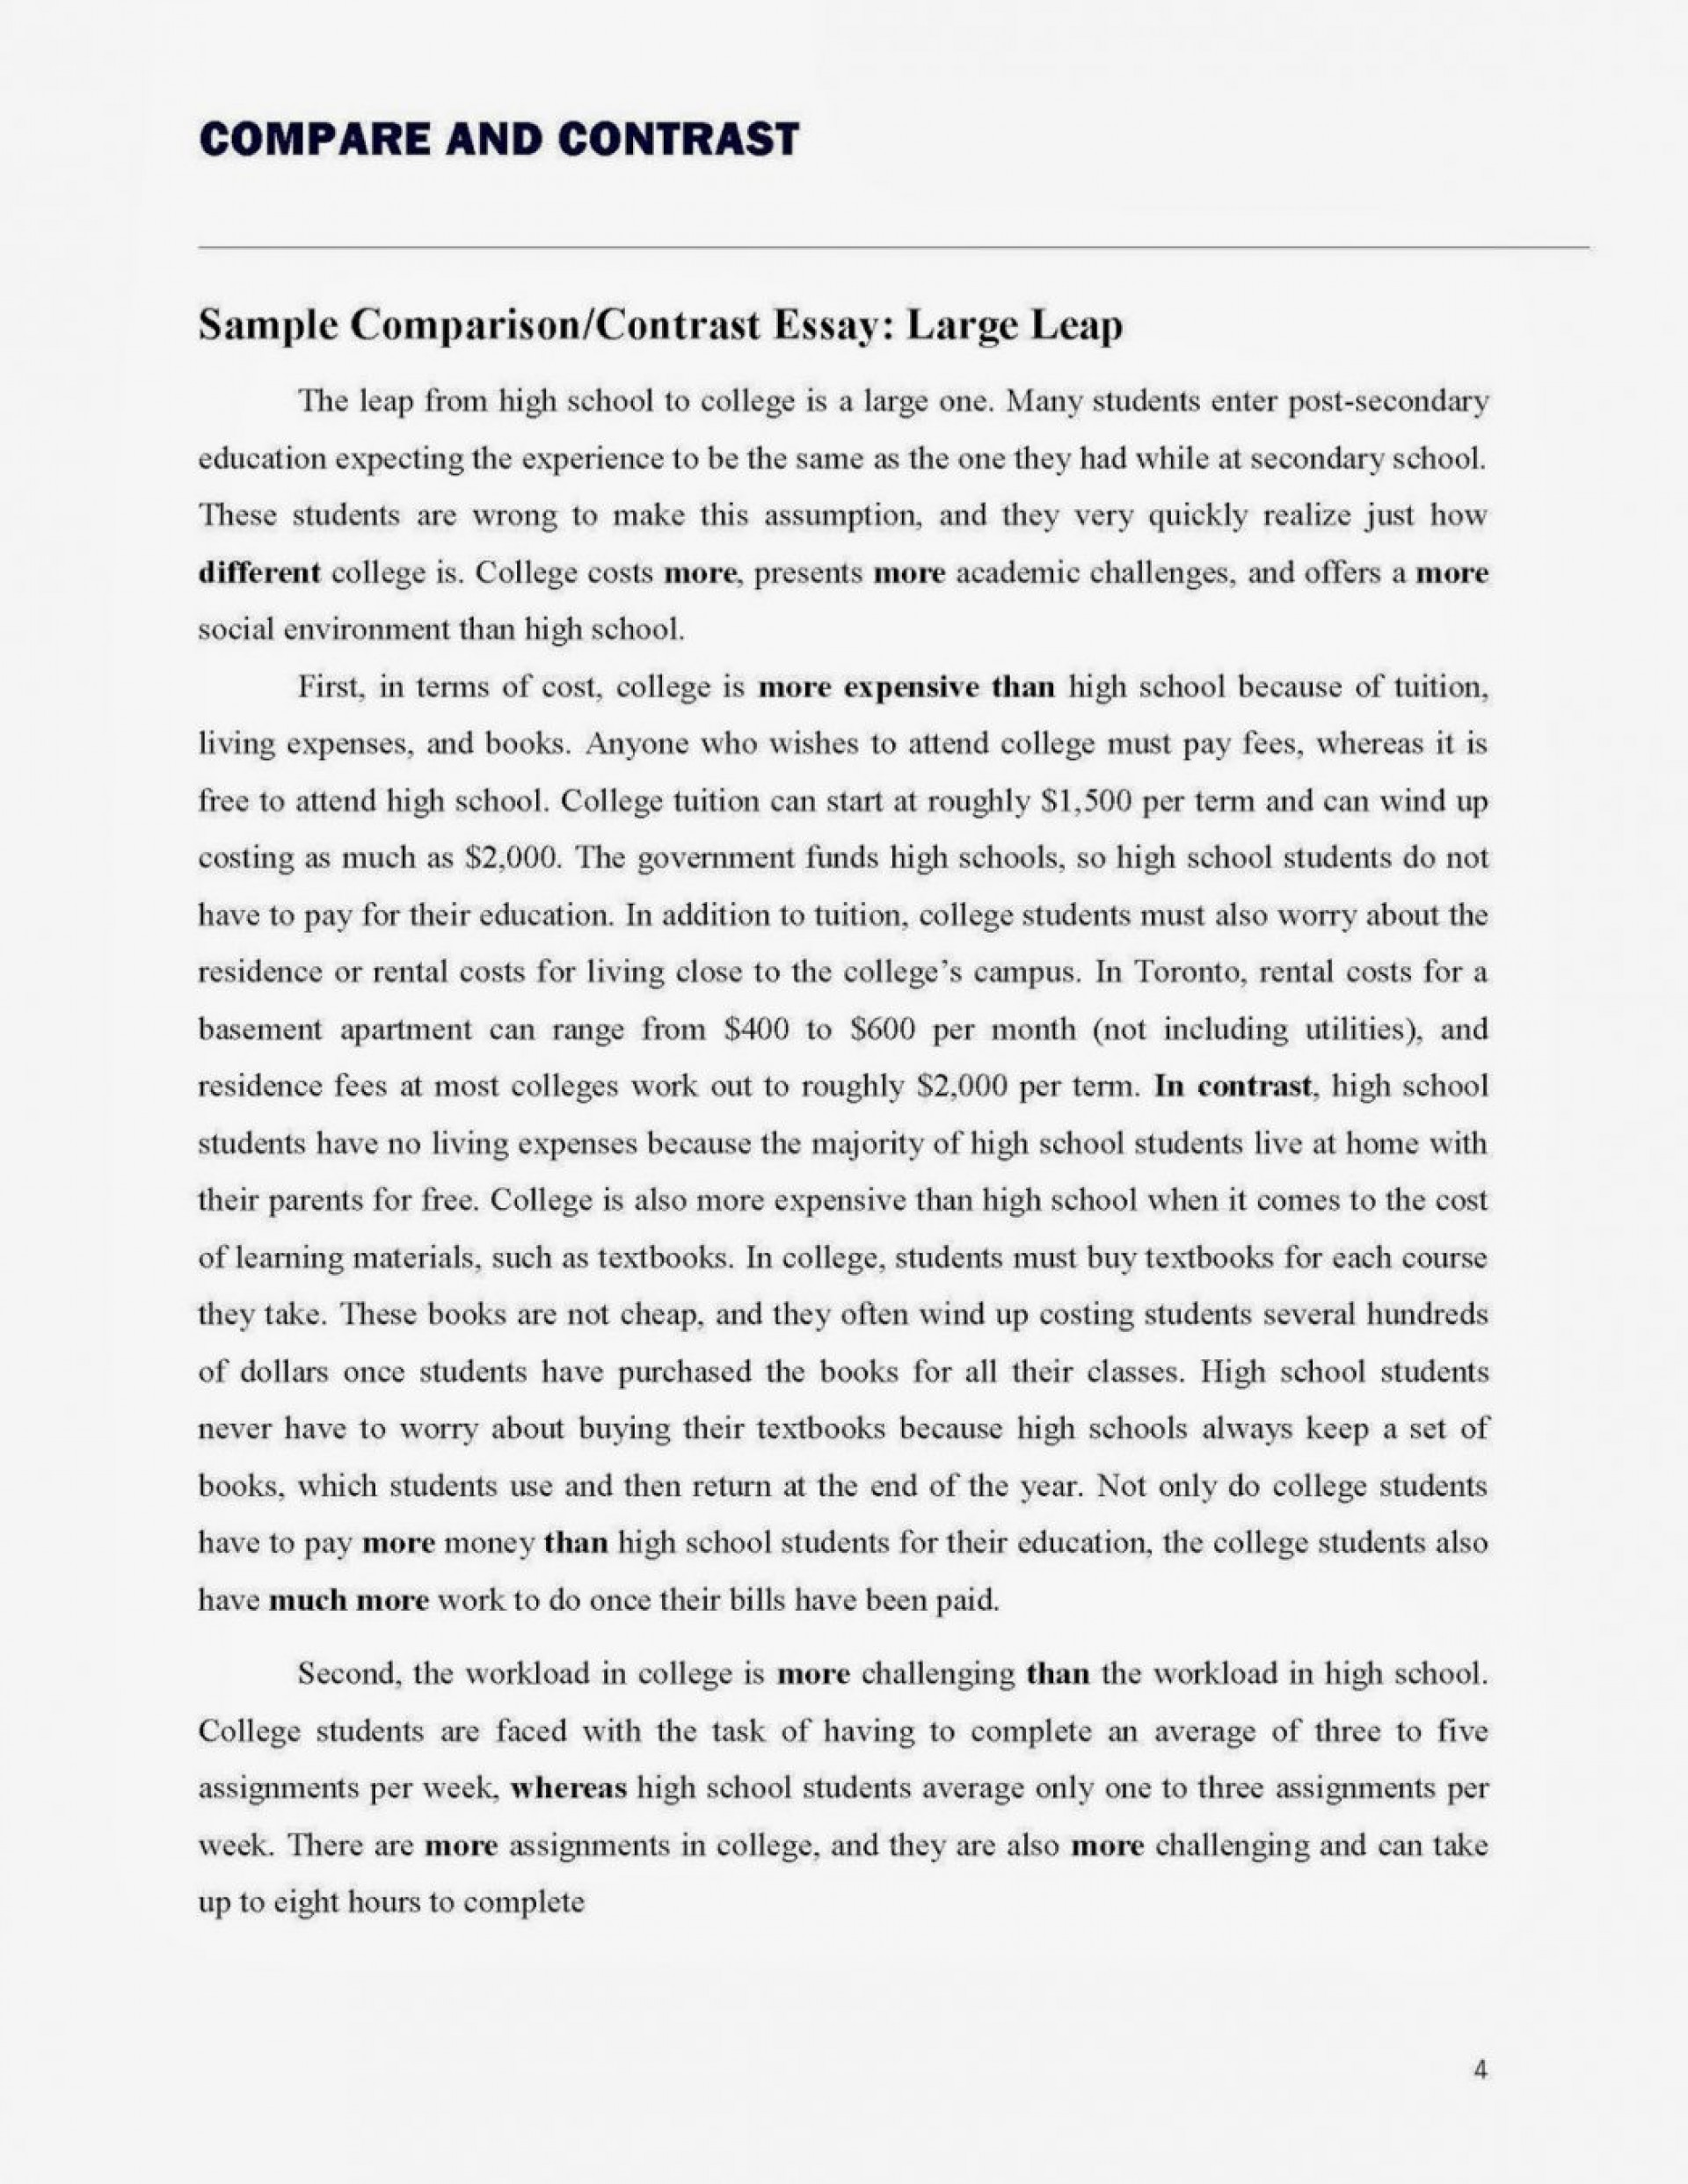 007 Word Essay The Giver Topics Ple Dns Phrases Totart Persu Ways Oftarting Persuasive How Conclusion Words With Quote Hooks Examplesentences For Introduction 1048x1356 Example Formidable To Start A Compare And Contrast Write Examples Comparison Thesis Middle School 1920